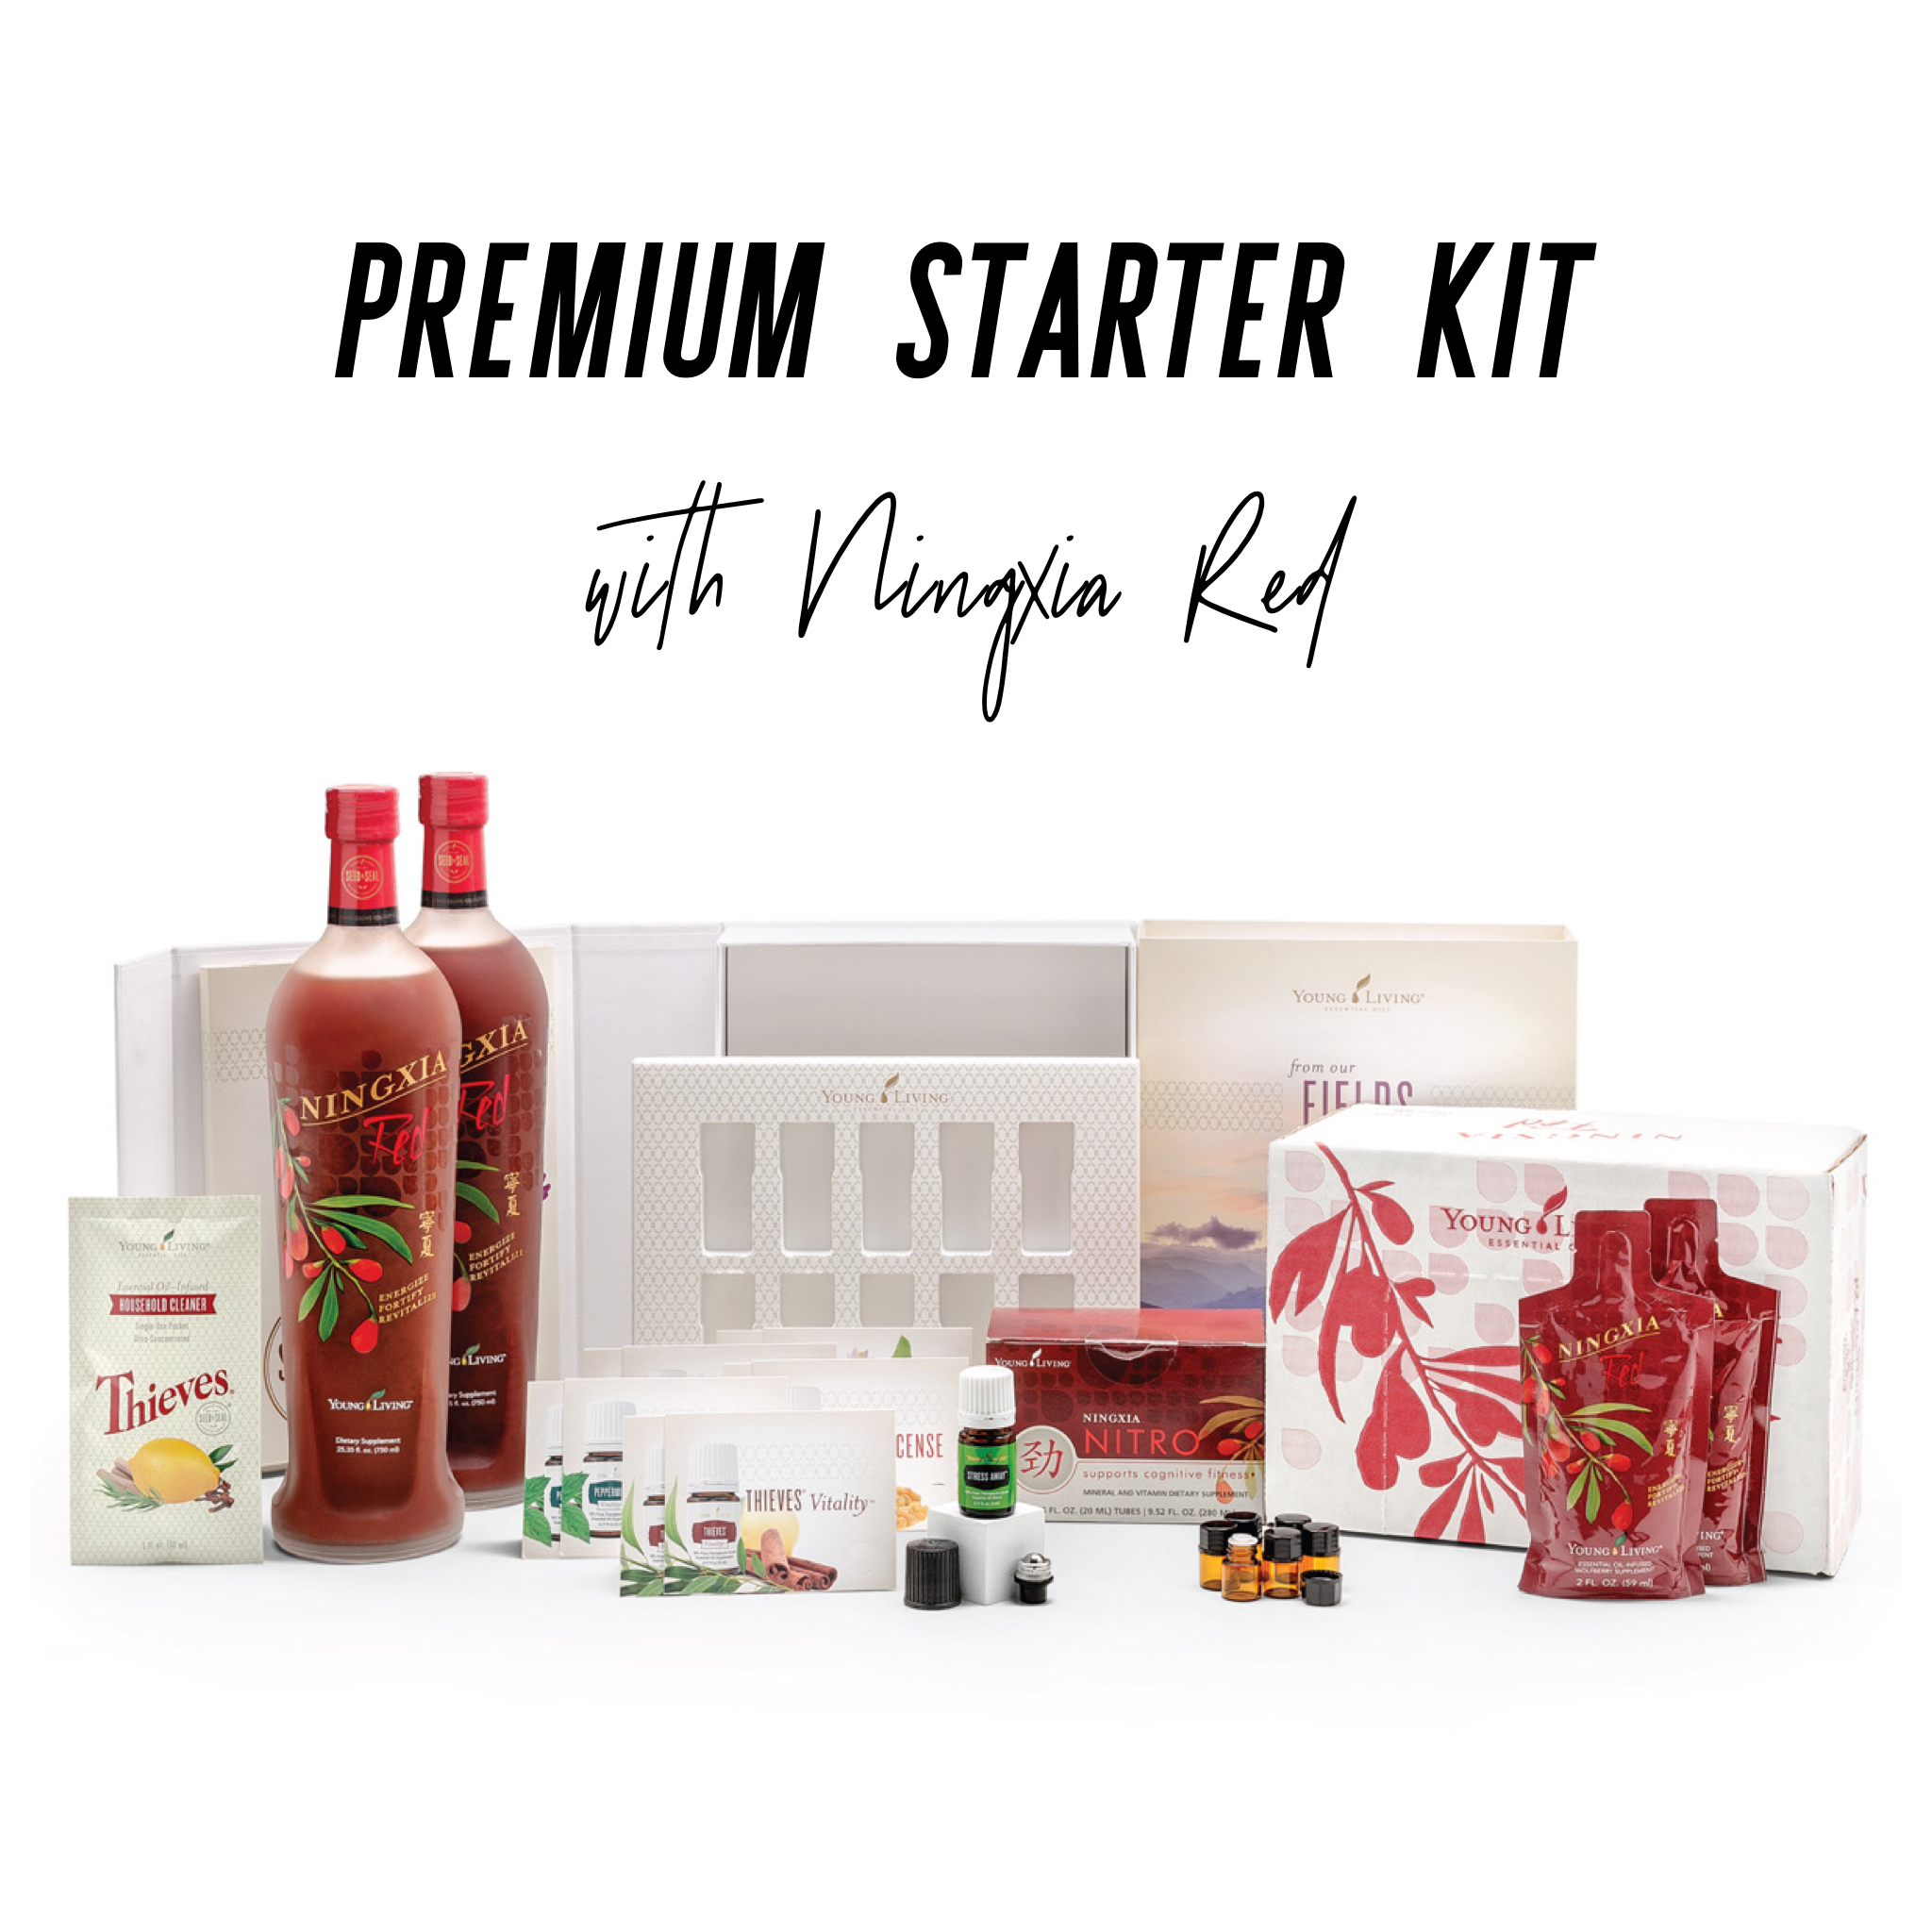 - Ningxia Red is an antioxidant drink made from the wolfberry and other super fruits. Everyone in the family needs to drink Ningxia Red! With this starter kit, you receive two bottles of Ningxia Red and 30 2oz packets for on the go. Ningxia Red supports so many body systems, especially eye health, cellular function, and energy levels. You will also receive a pack of Ningxia Nitro for a midday boost that supports alertness without added sugar and caffeine. If you're into supplements, this is one to add to your list!